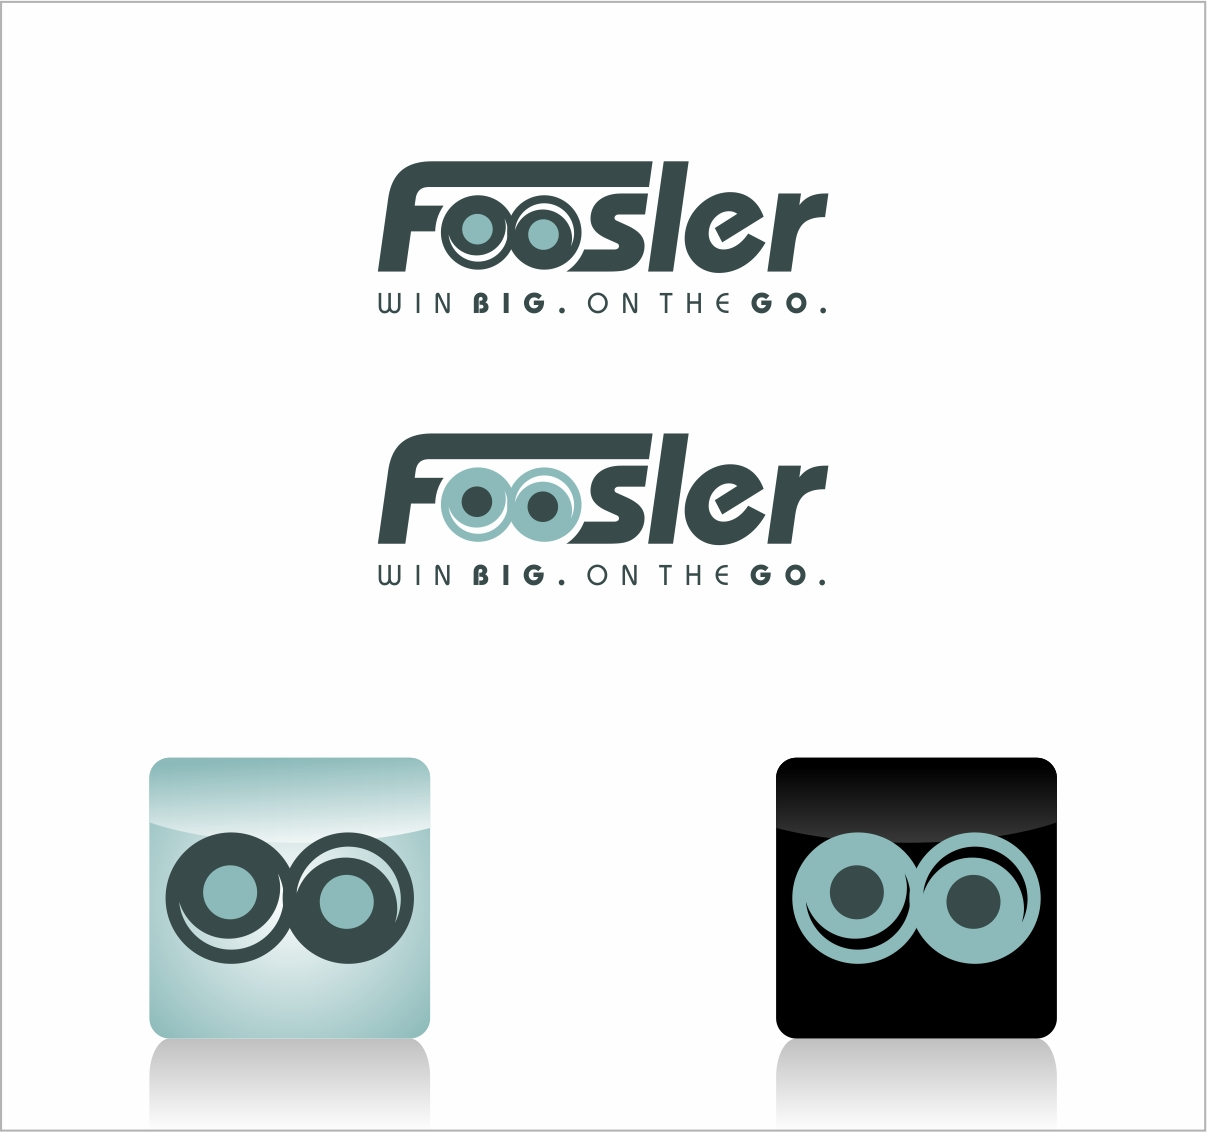 Logo Design by haidu - Entry No. 89 in the Logo Design Contest Foosler Logo Design.